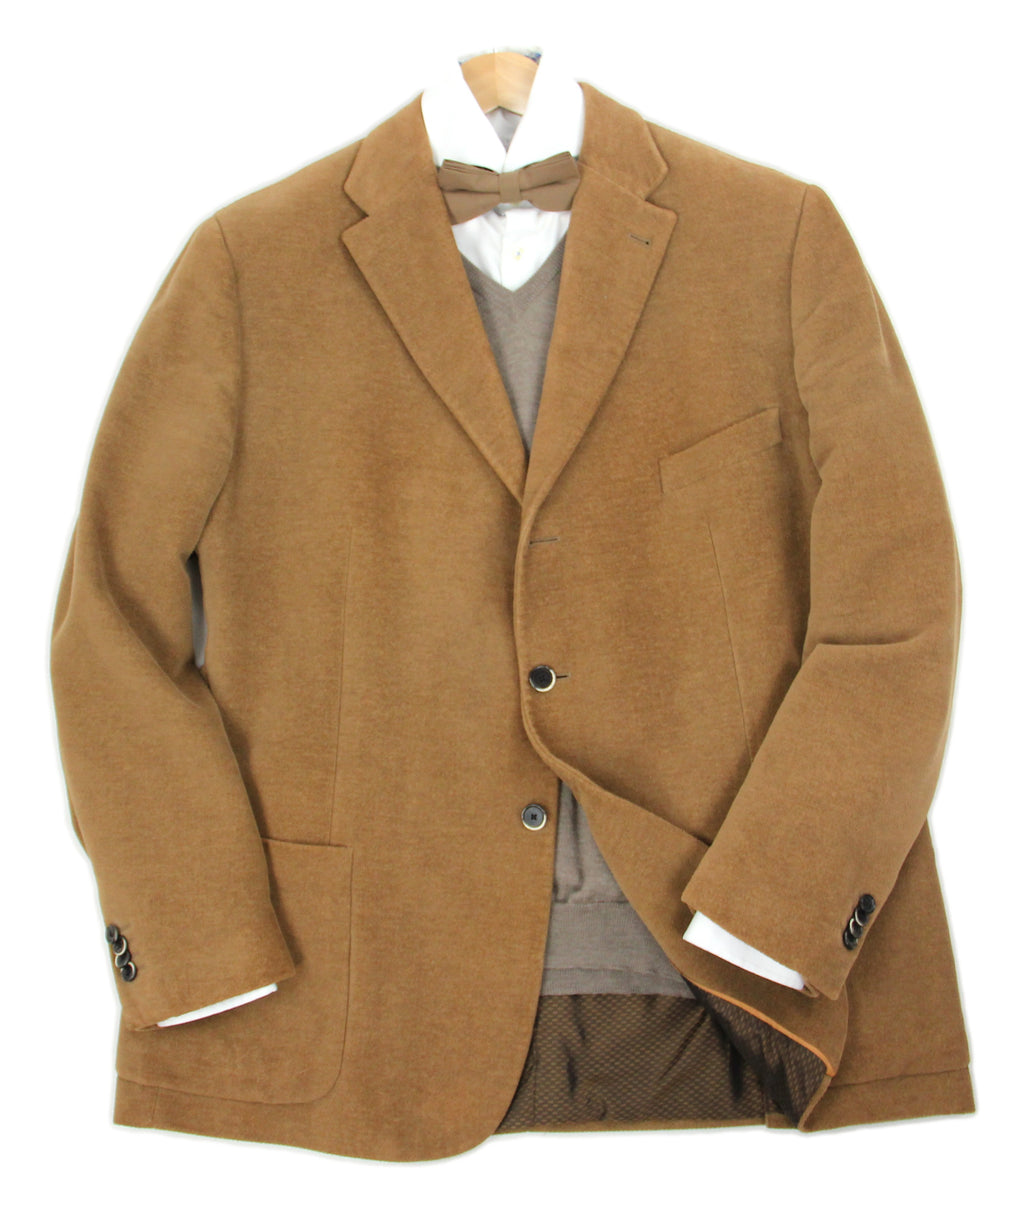 Corneliani Cotton & Cashmere Corduroy Camel Brown Sport Coat, US 46R, EU 56R